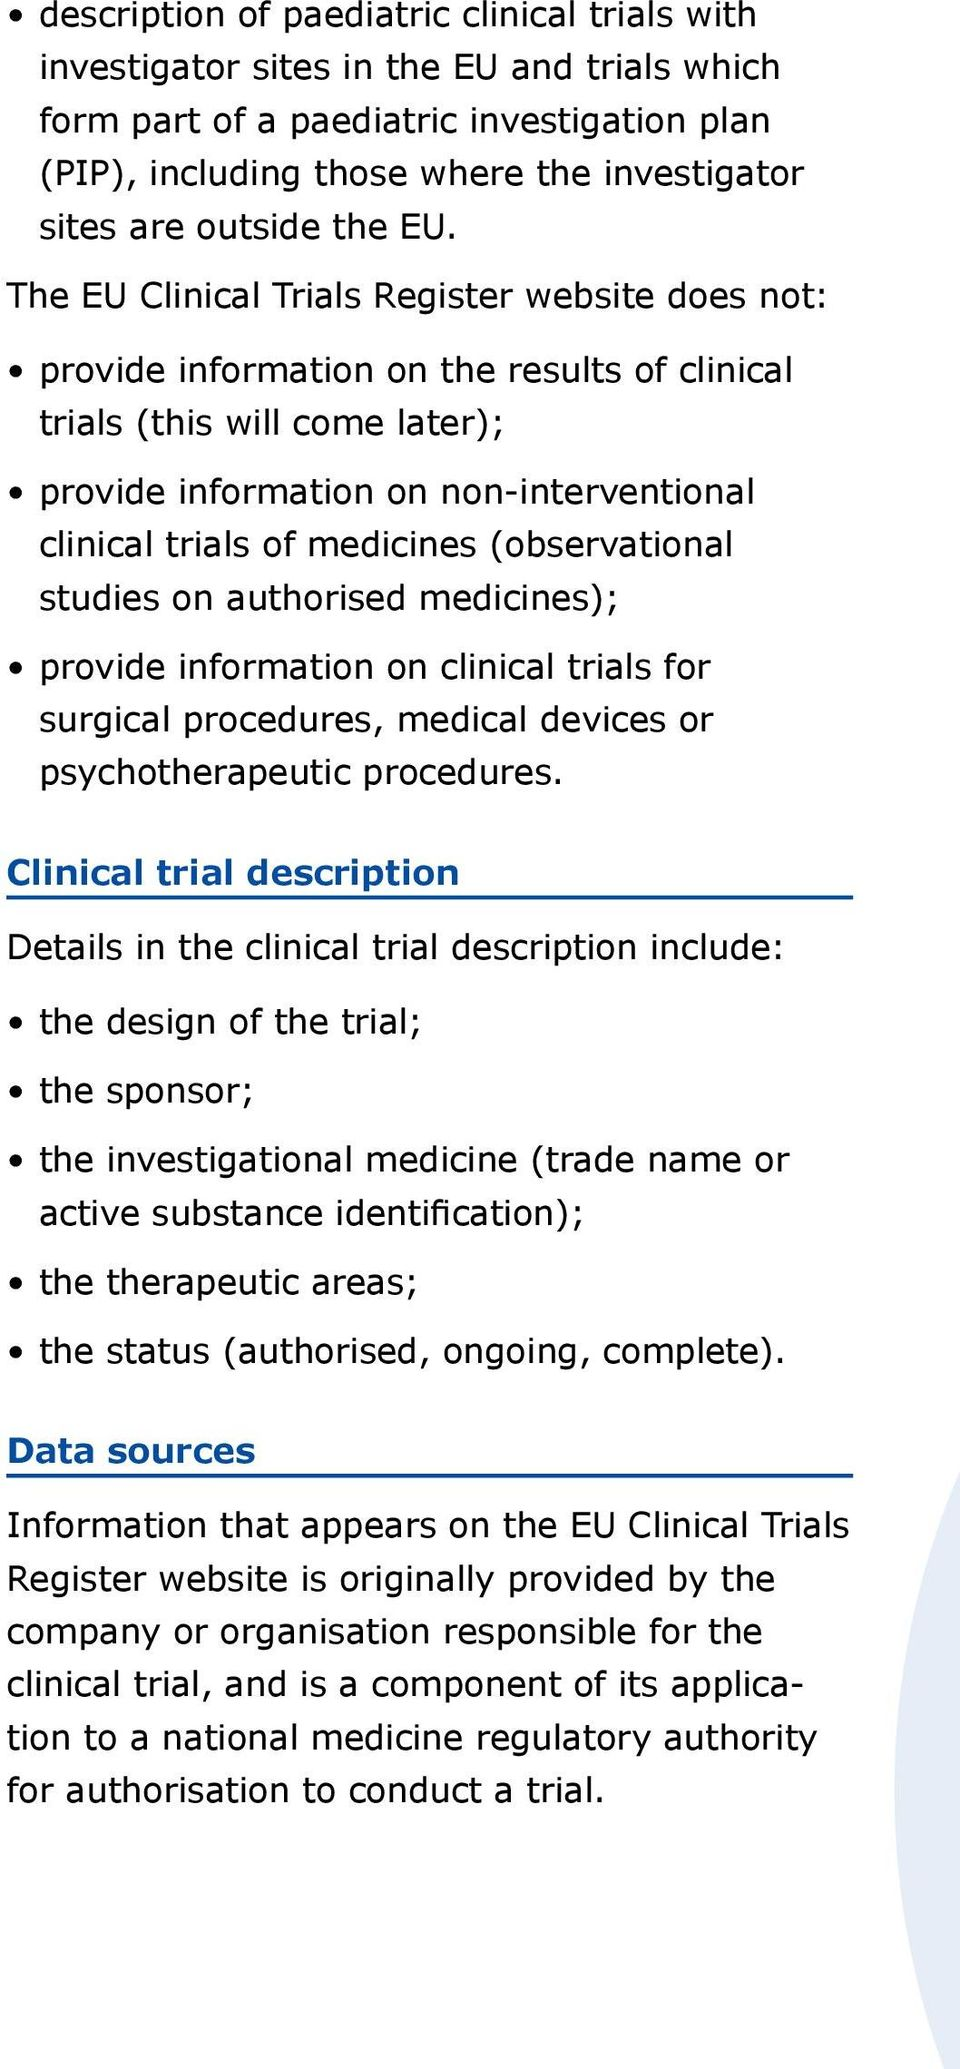 The EU Clinical Trials Register website does not: provide information on the results of clinical trials (this will come later); provide information on non-interventional clinical trials of medicines